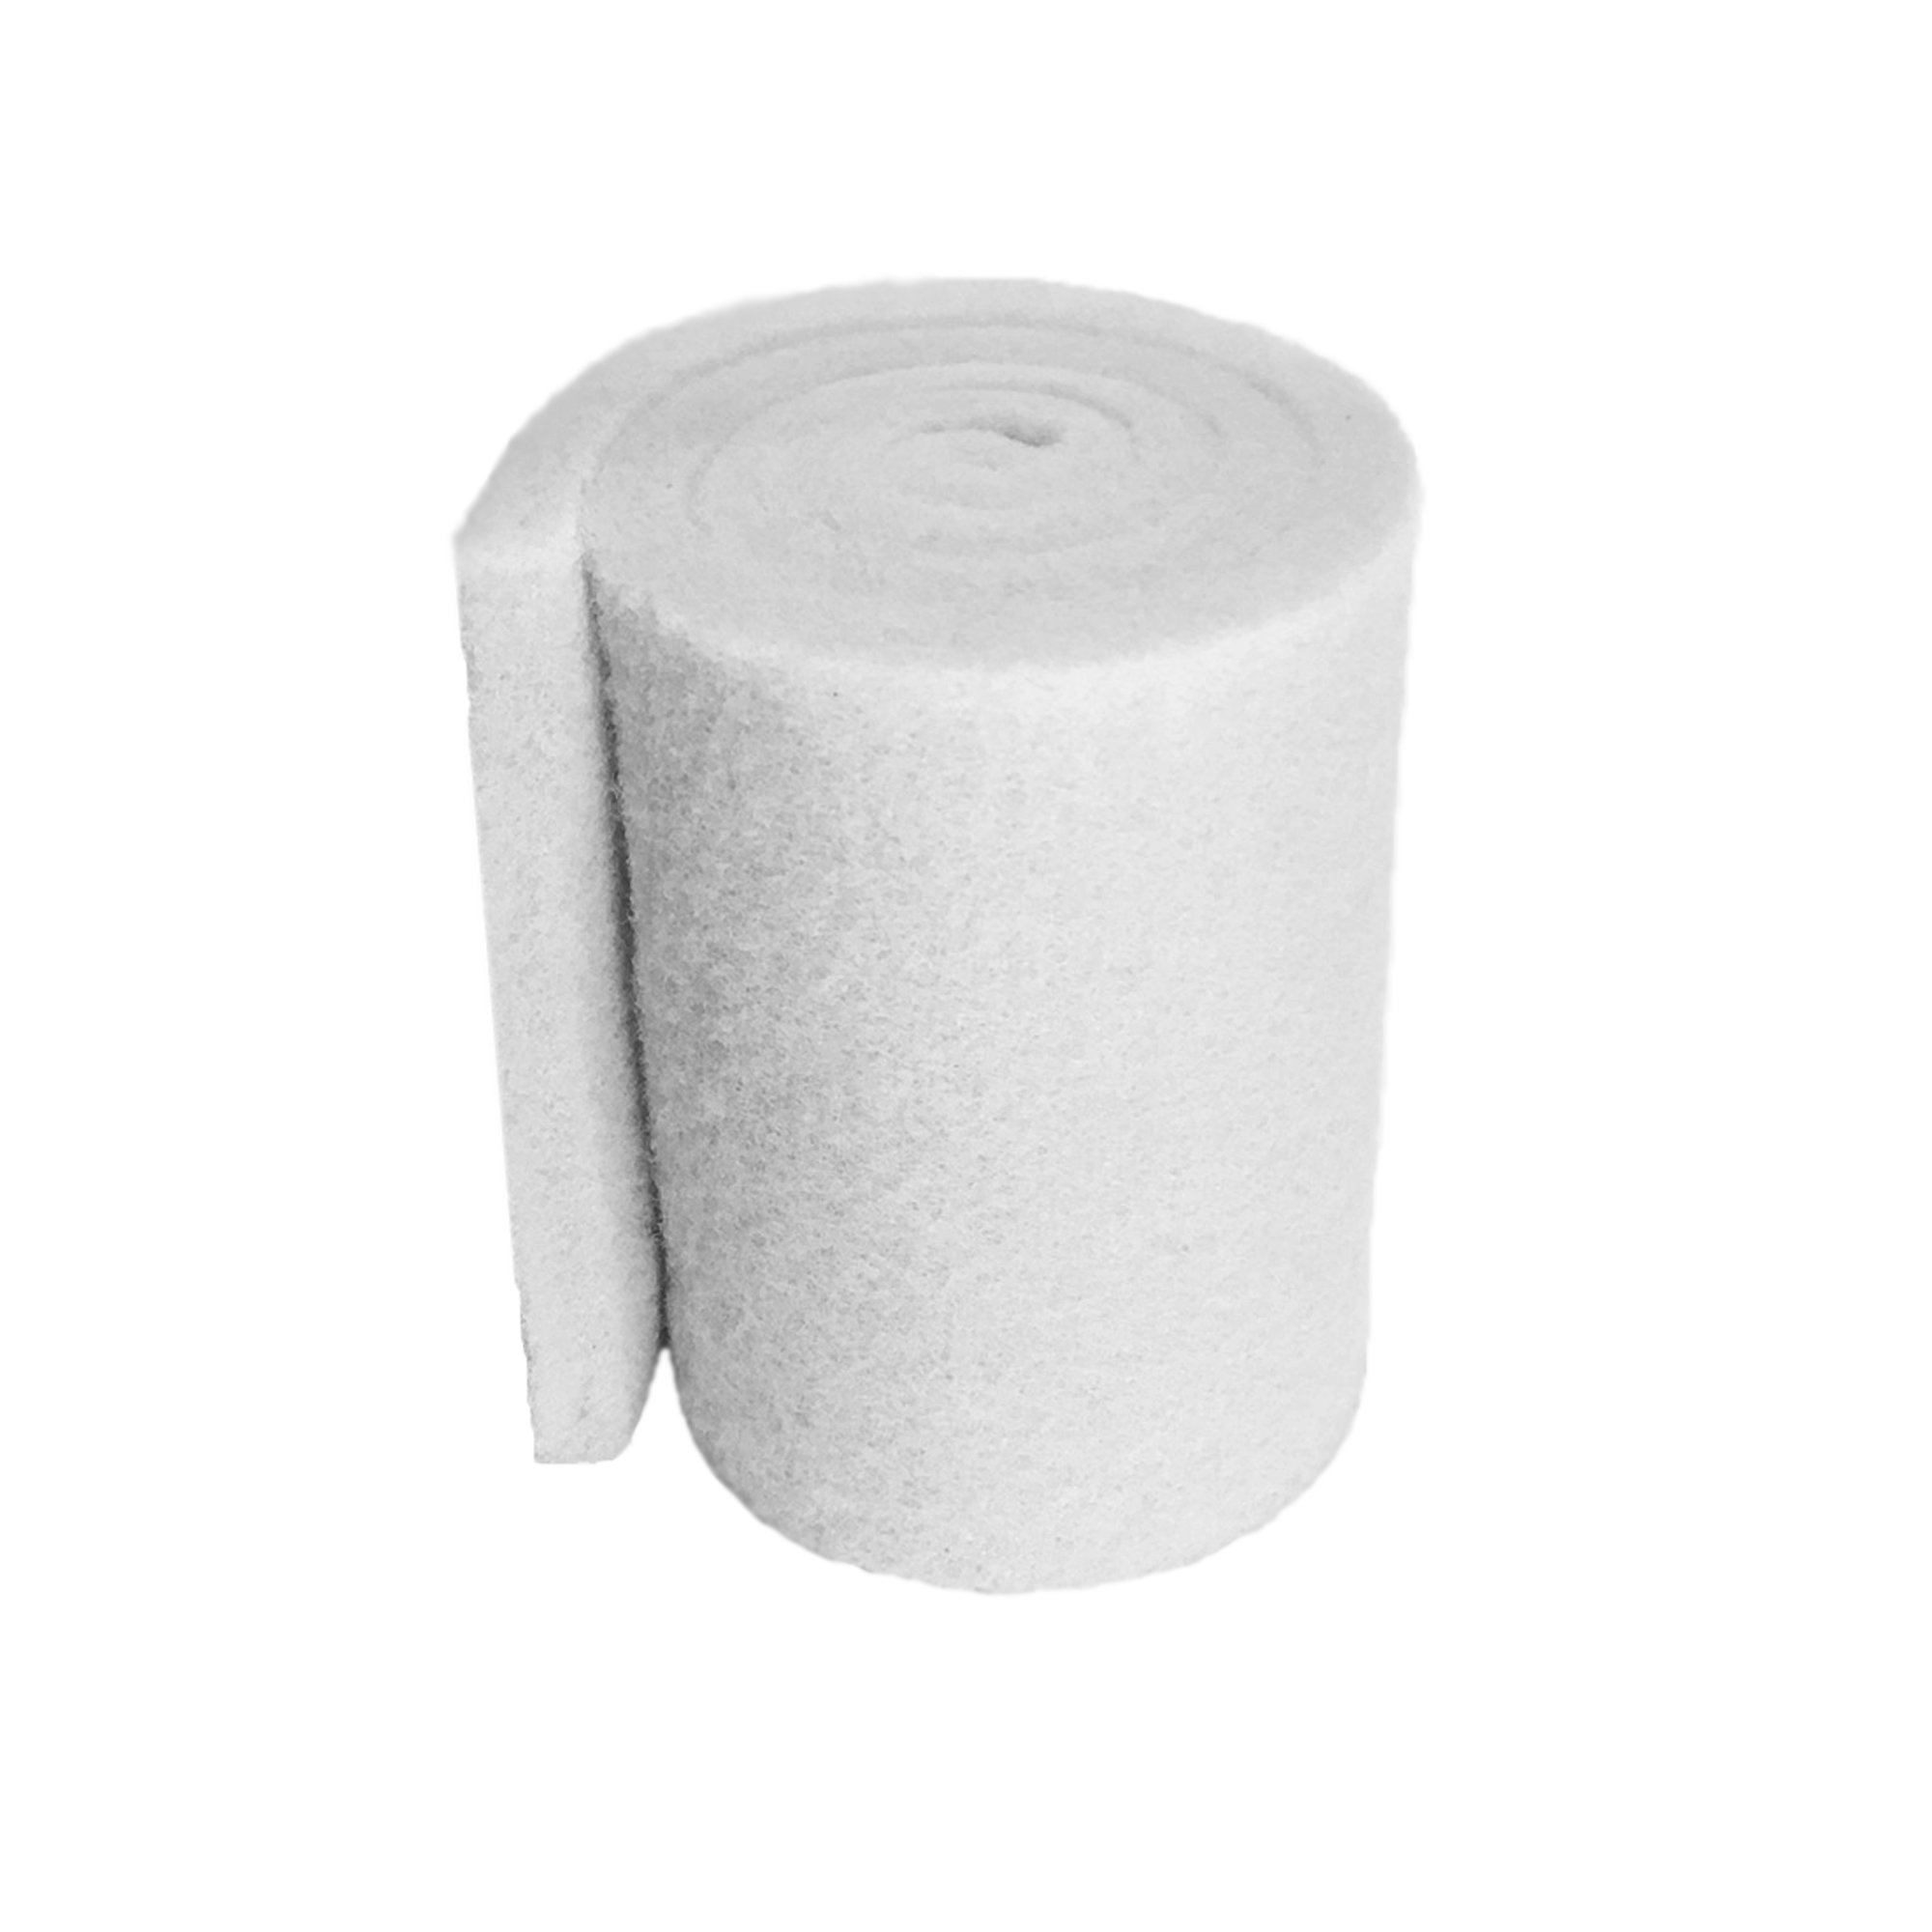 Aquatic Experts Classic Koi Pond Filter Pad FINE - 12 Inches by 72 Inches by 3/4'' to 1 Inch - White Bulk Roll Pond Filter Media, Ultra-Durable Fish Pond Filter Material USA